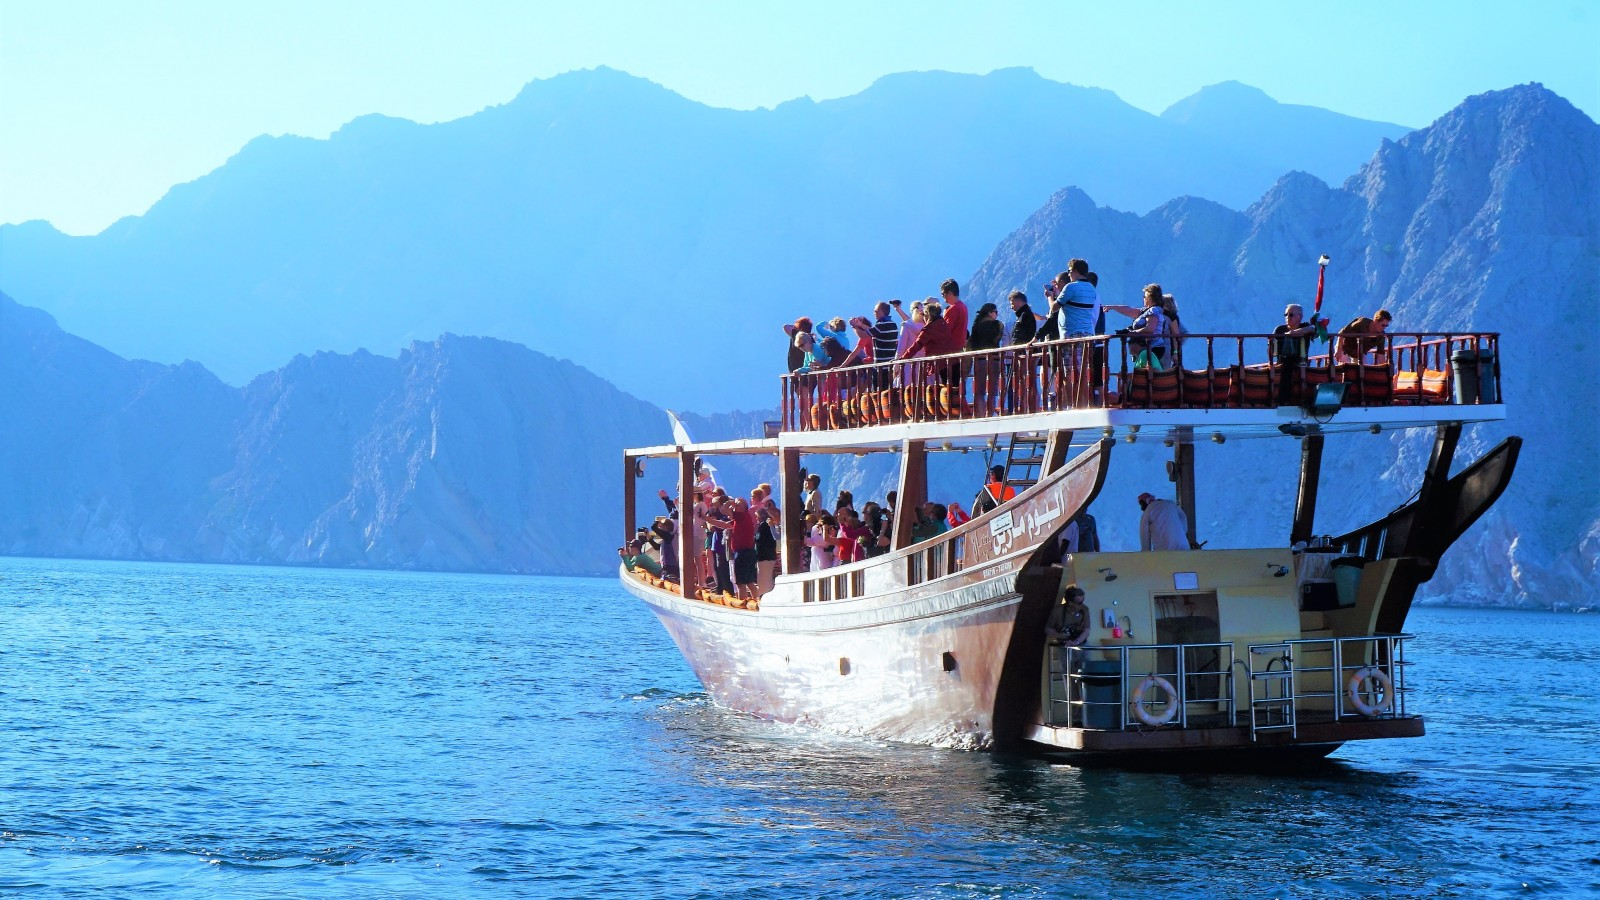 Dolphins can be seen frollicking in the Khasab fjords (khors) on the edge of the Musandam Peninsula